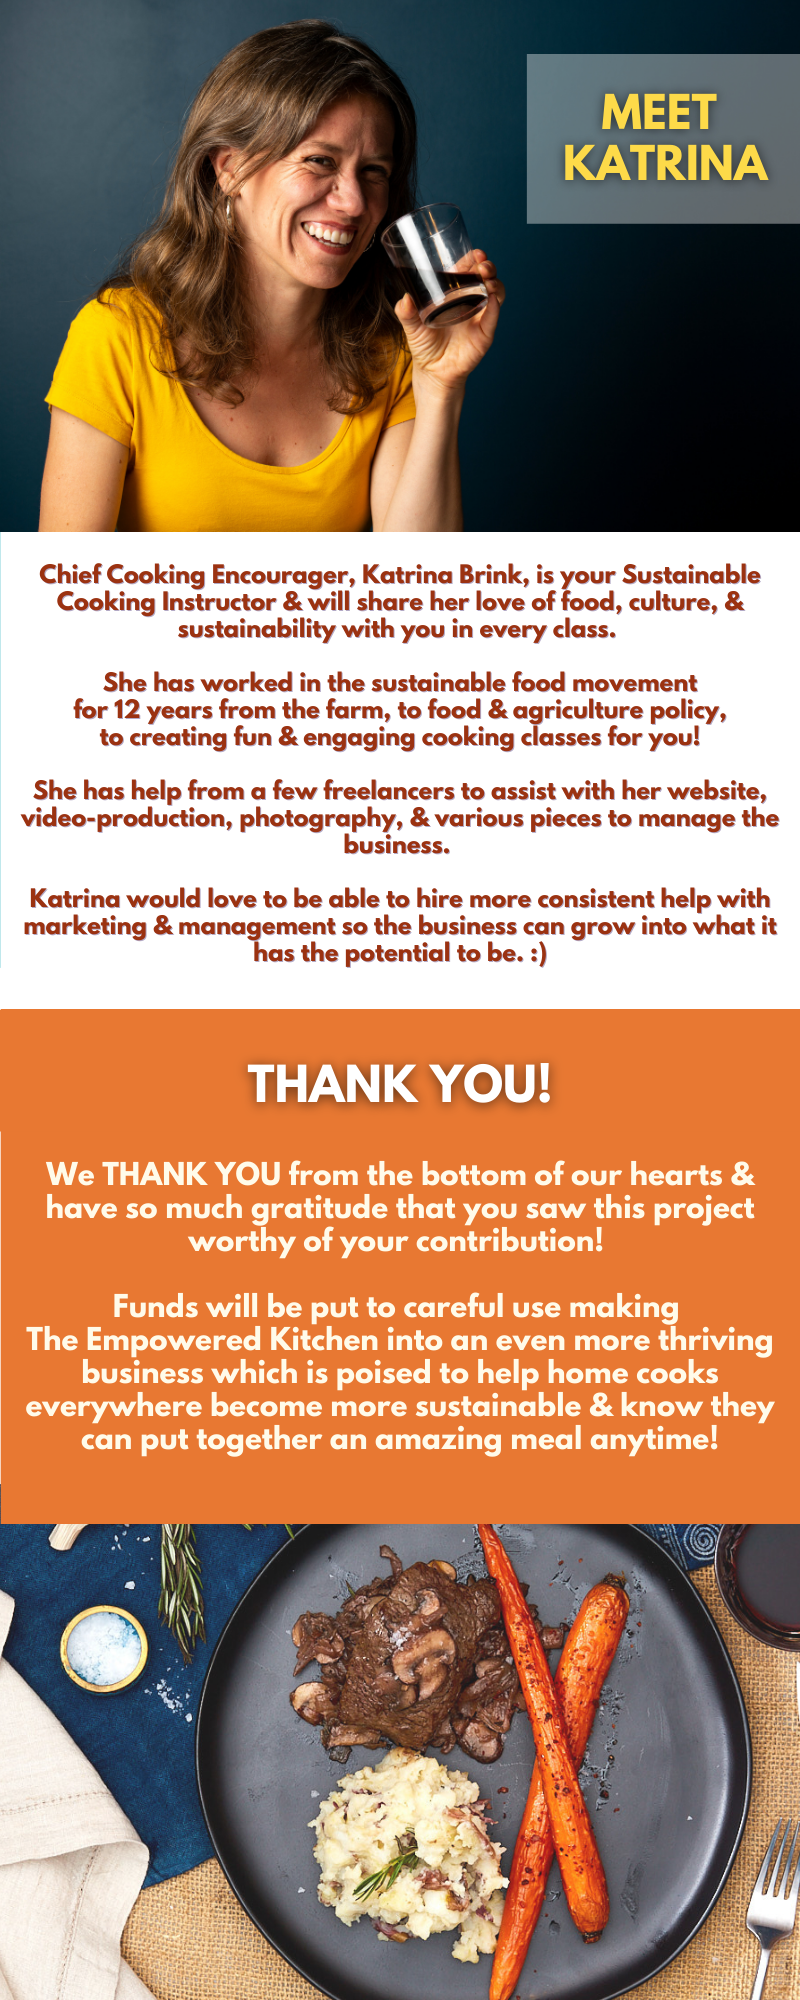 page 4 of crowdfunding campaign